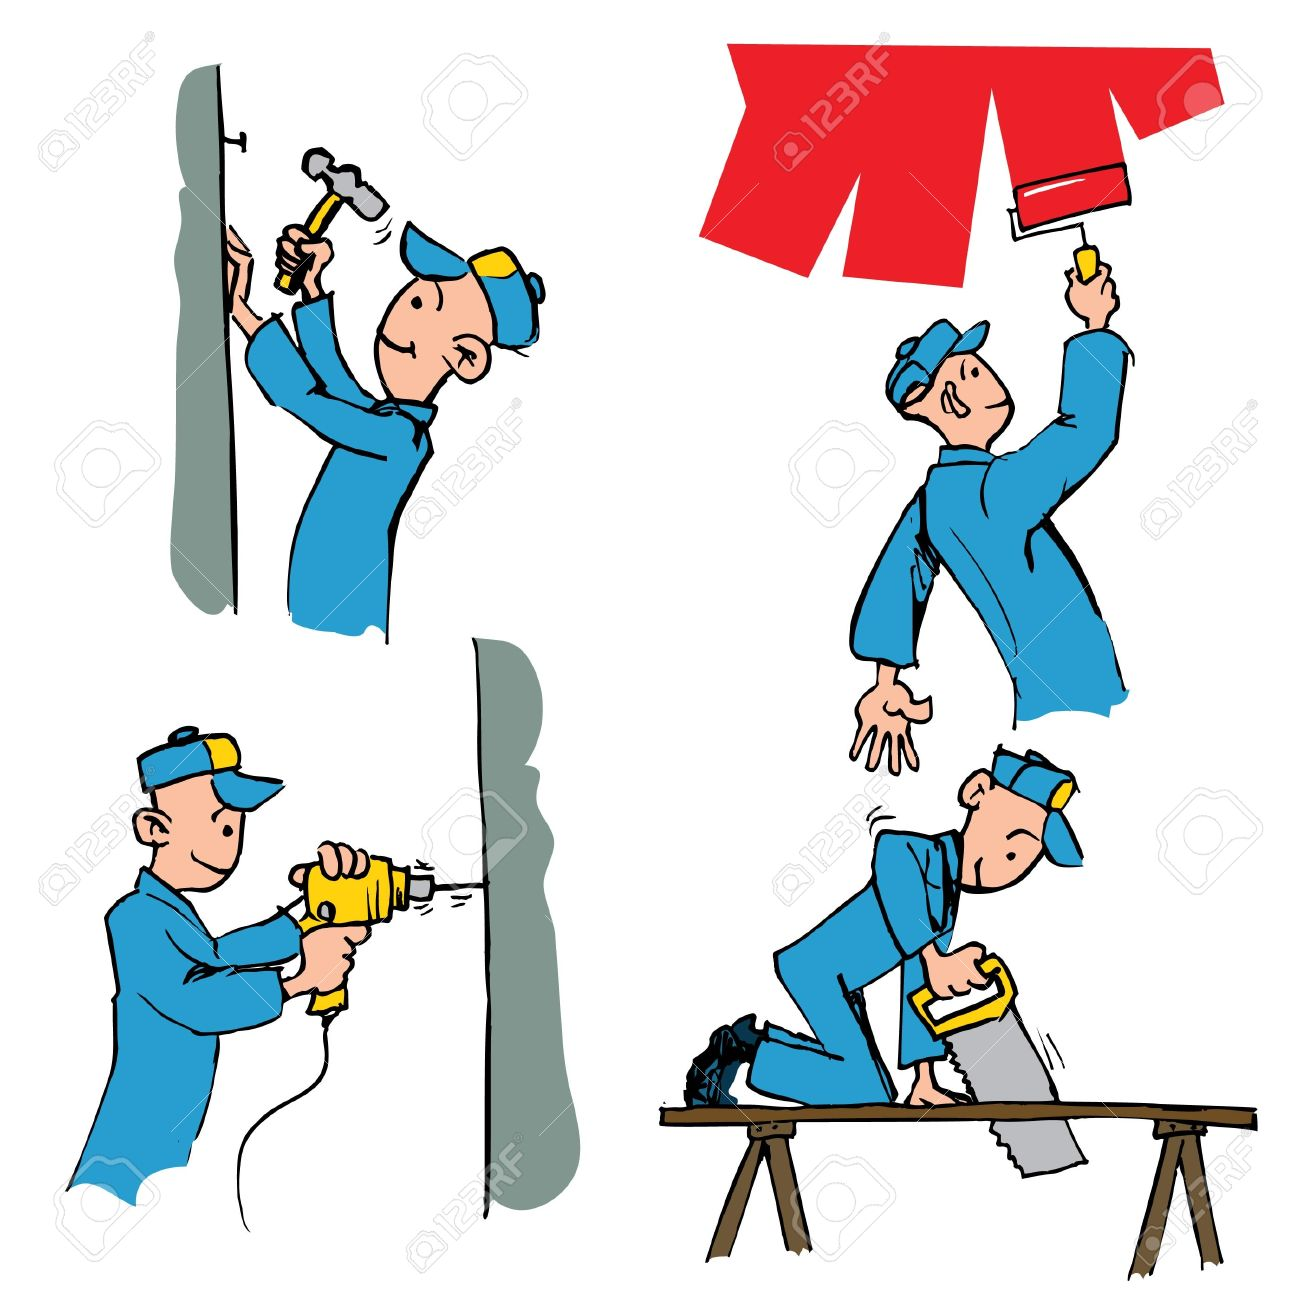 Cartoon set of workman doing different DIY chores including painting,drilling,woodwork etc Stock Vector - 9154999